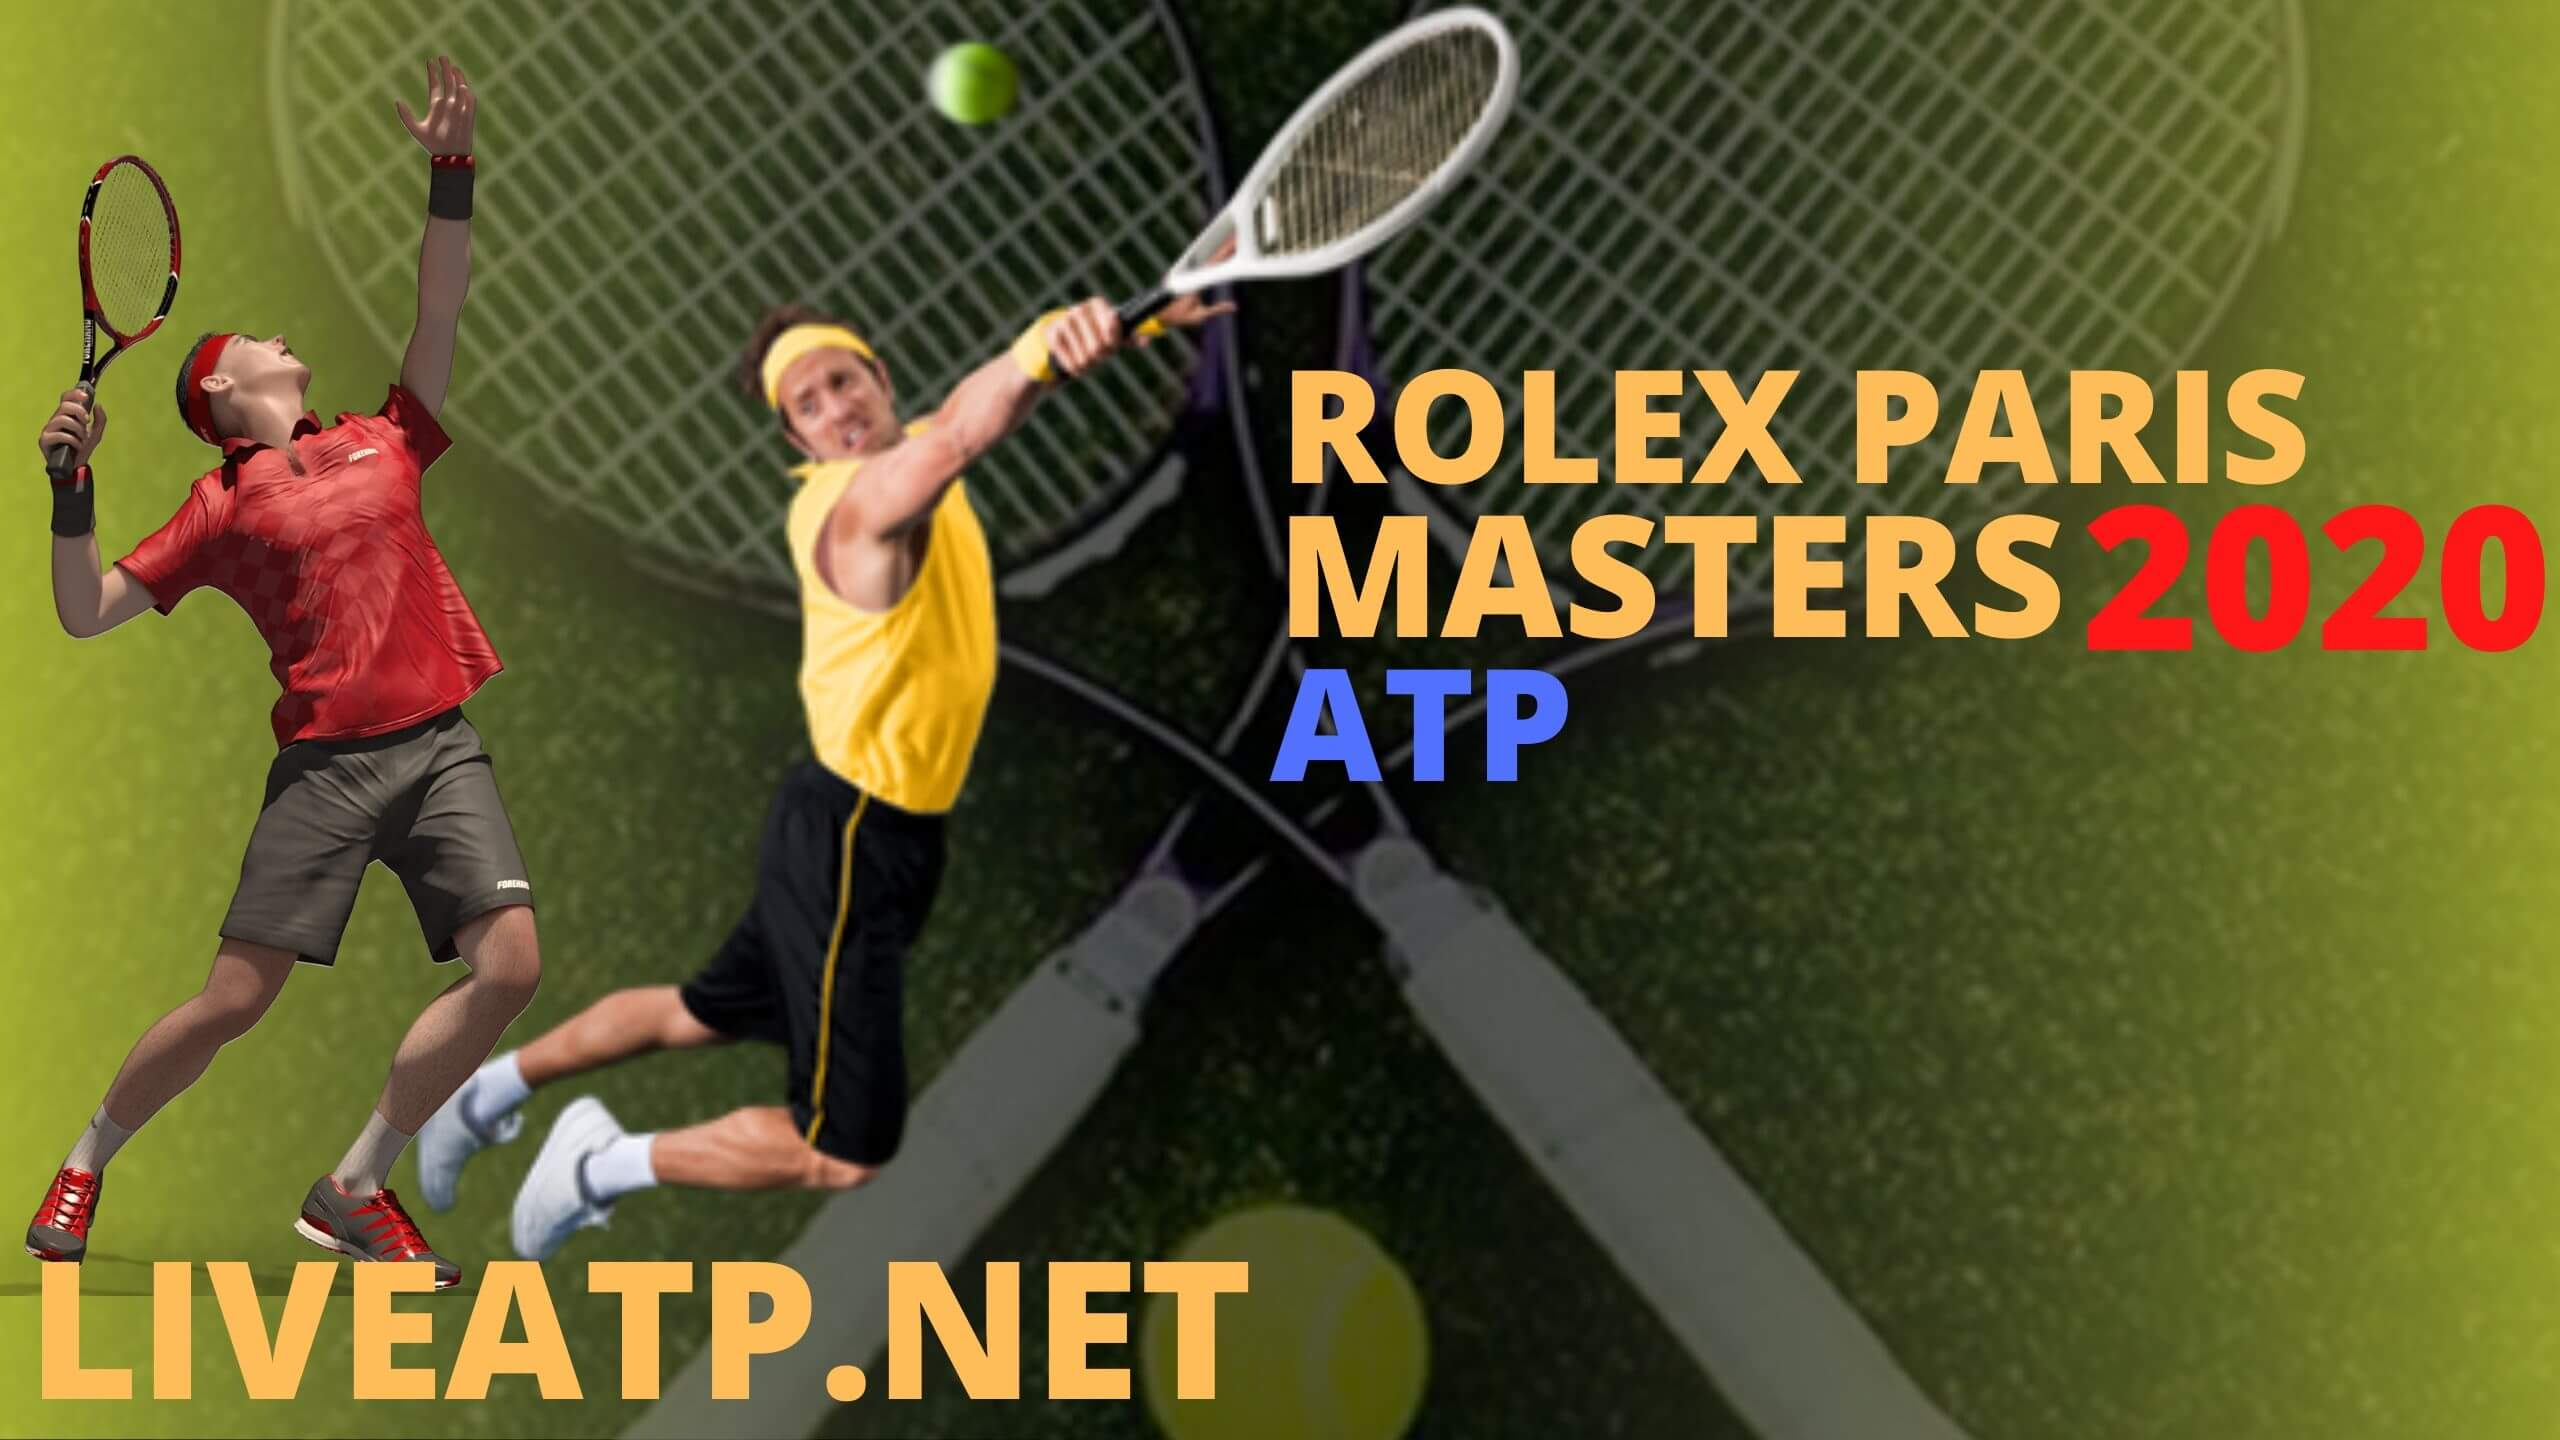 Rolex Paris Masters Live Stream 2020 | Day 6